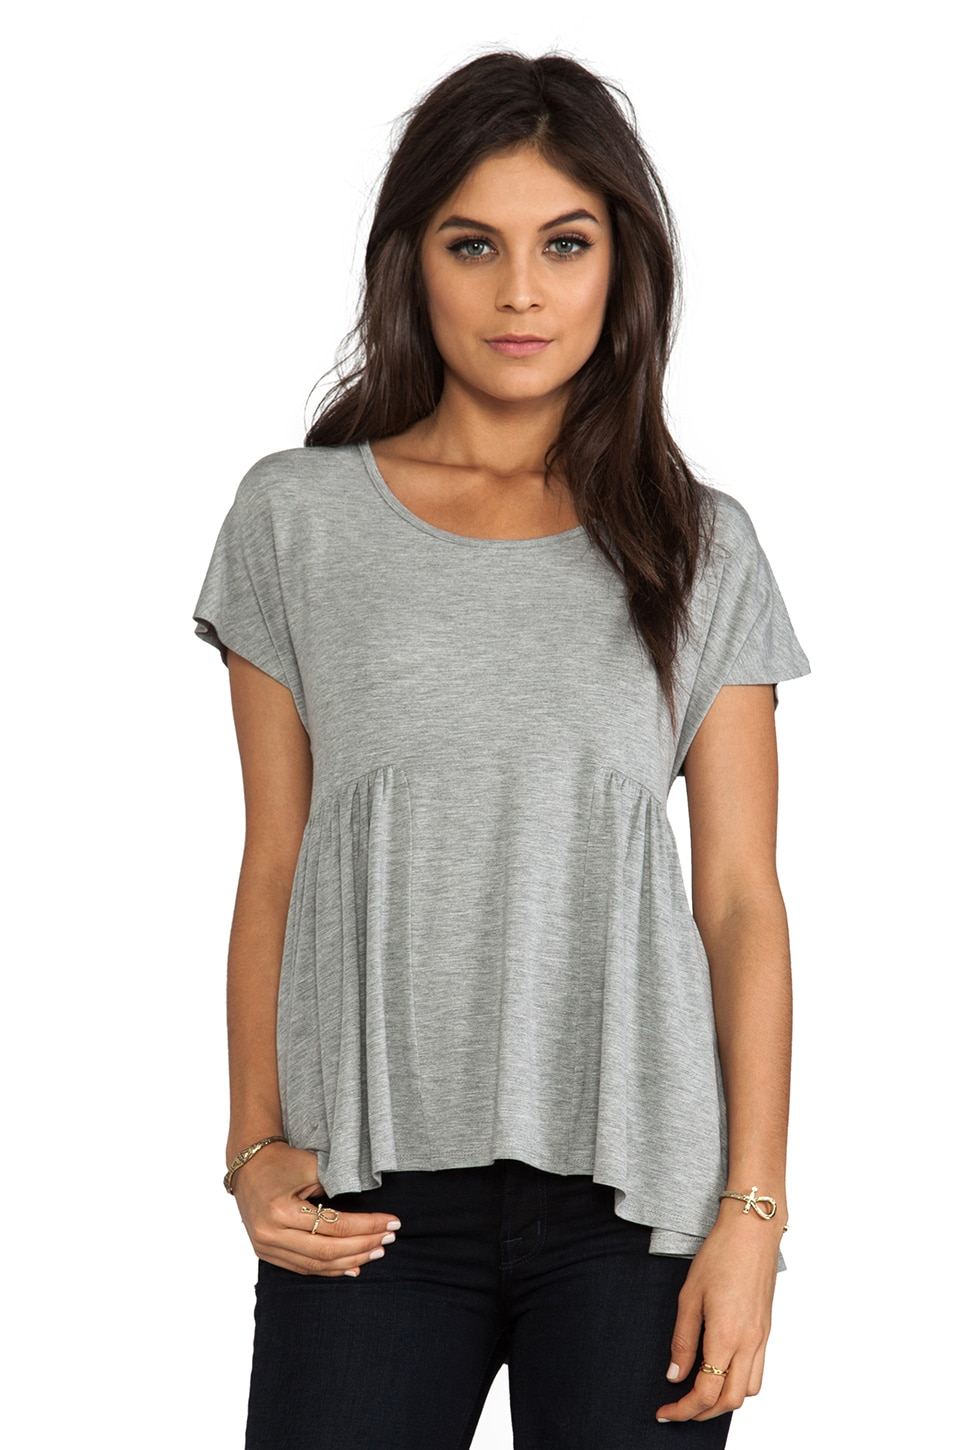 Lovers + Friends Take Me There Top in Heather Grey